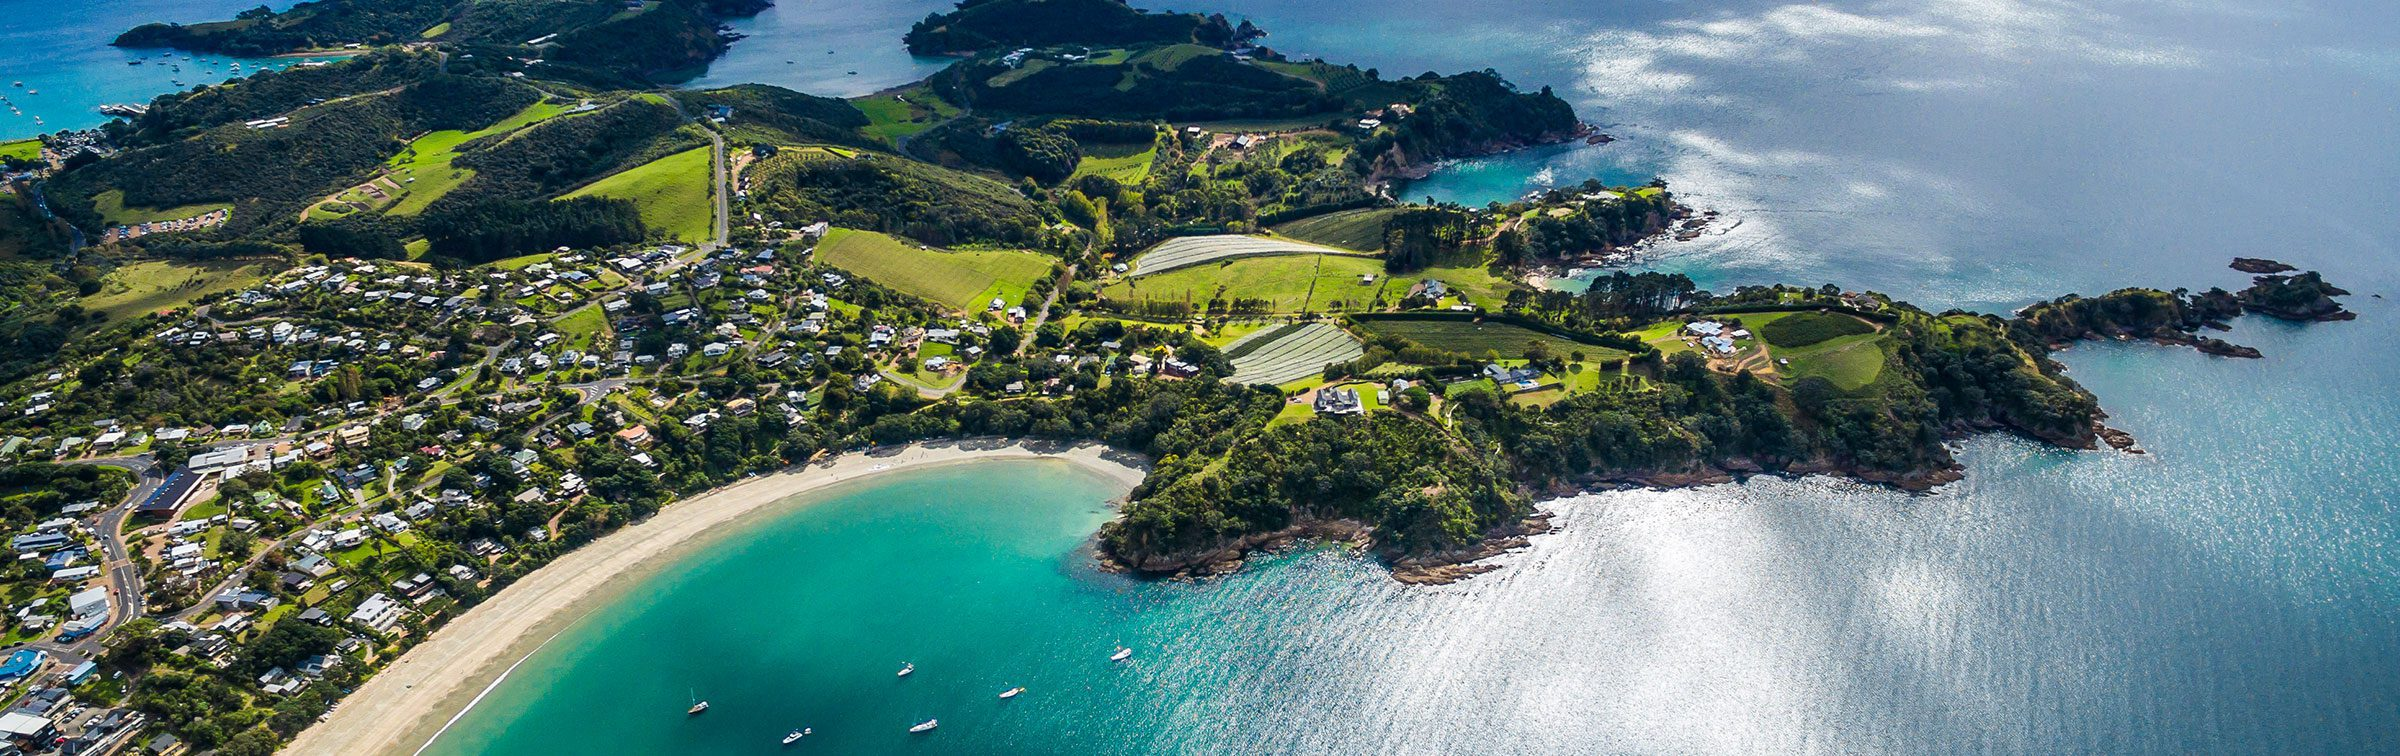 aerial view over waiheke island showing the turquoise water and green interior of the island on New Zealand tour